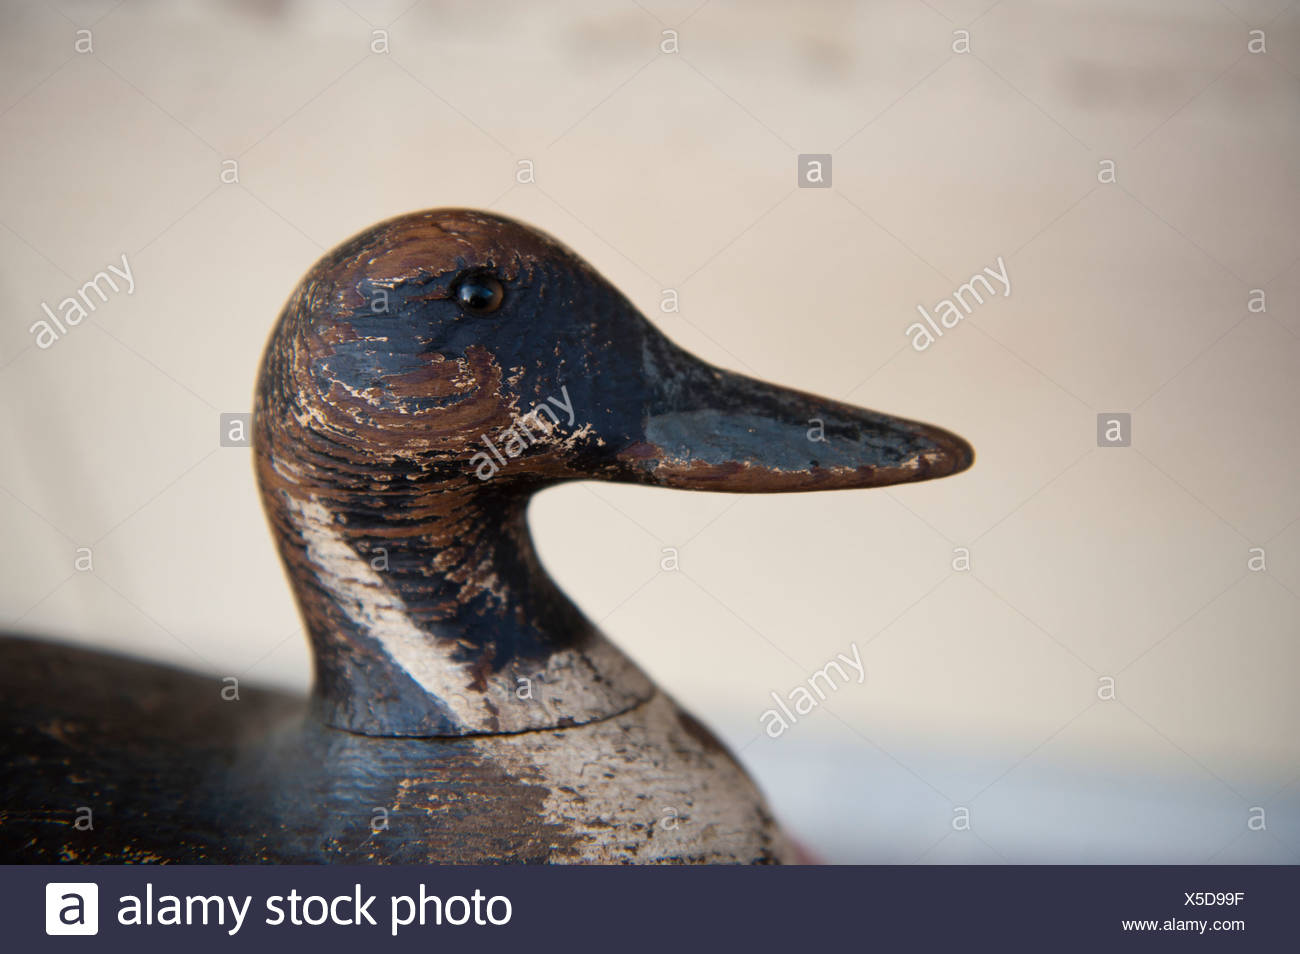 An antique duck decoy. - Stock Image